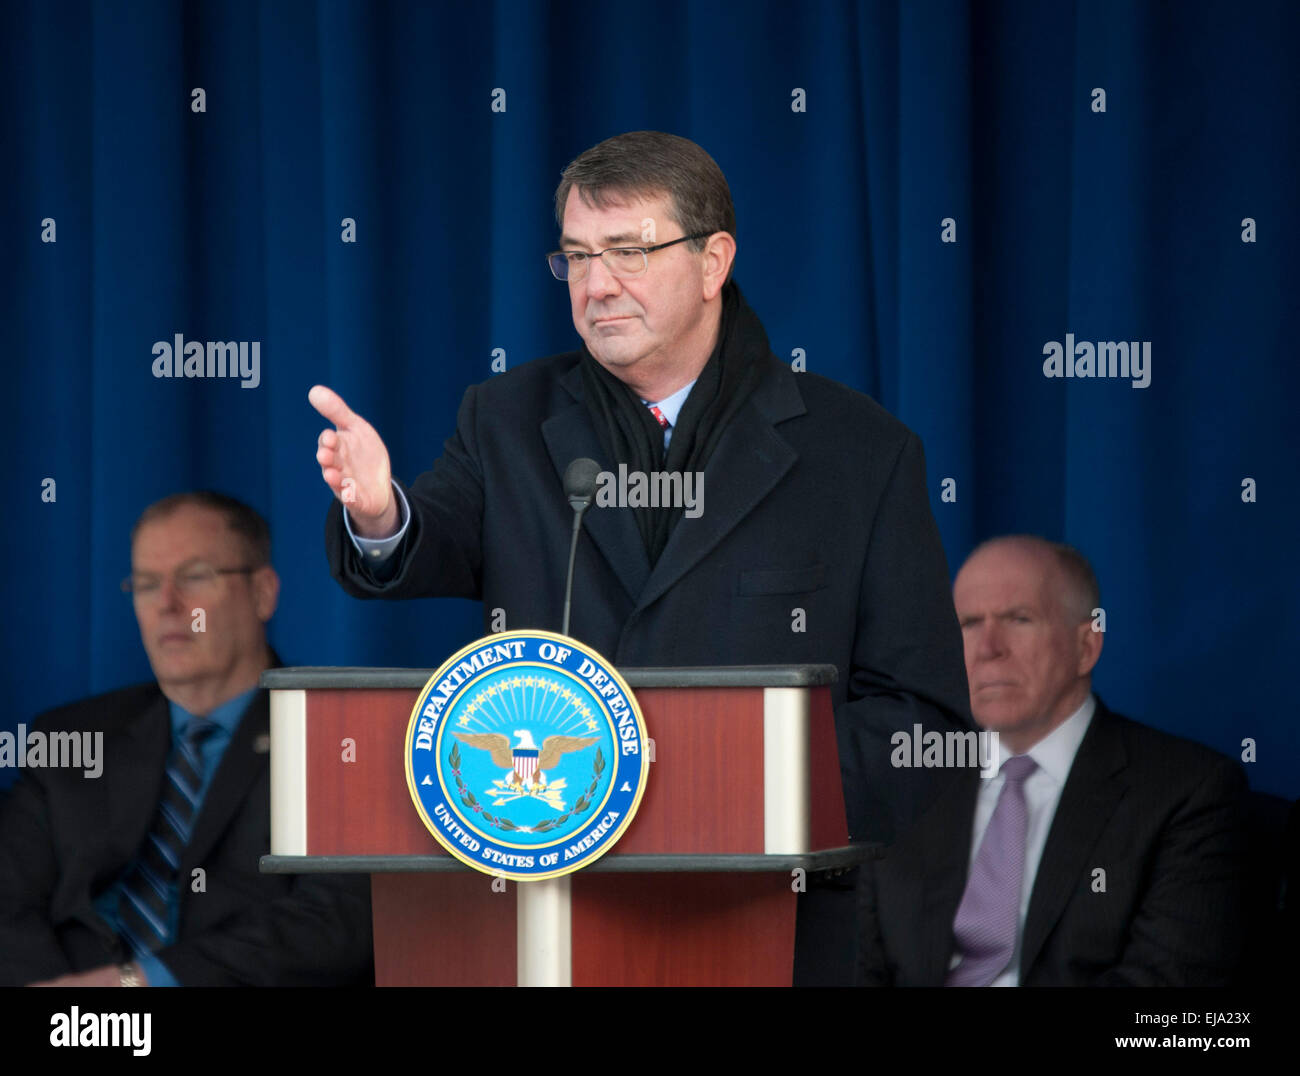 Washington, DC, USA. 23rd Mar, 2015. U.S. Defense Secretary Ashton Carter attends an event to thank service members - Stock Image